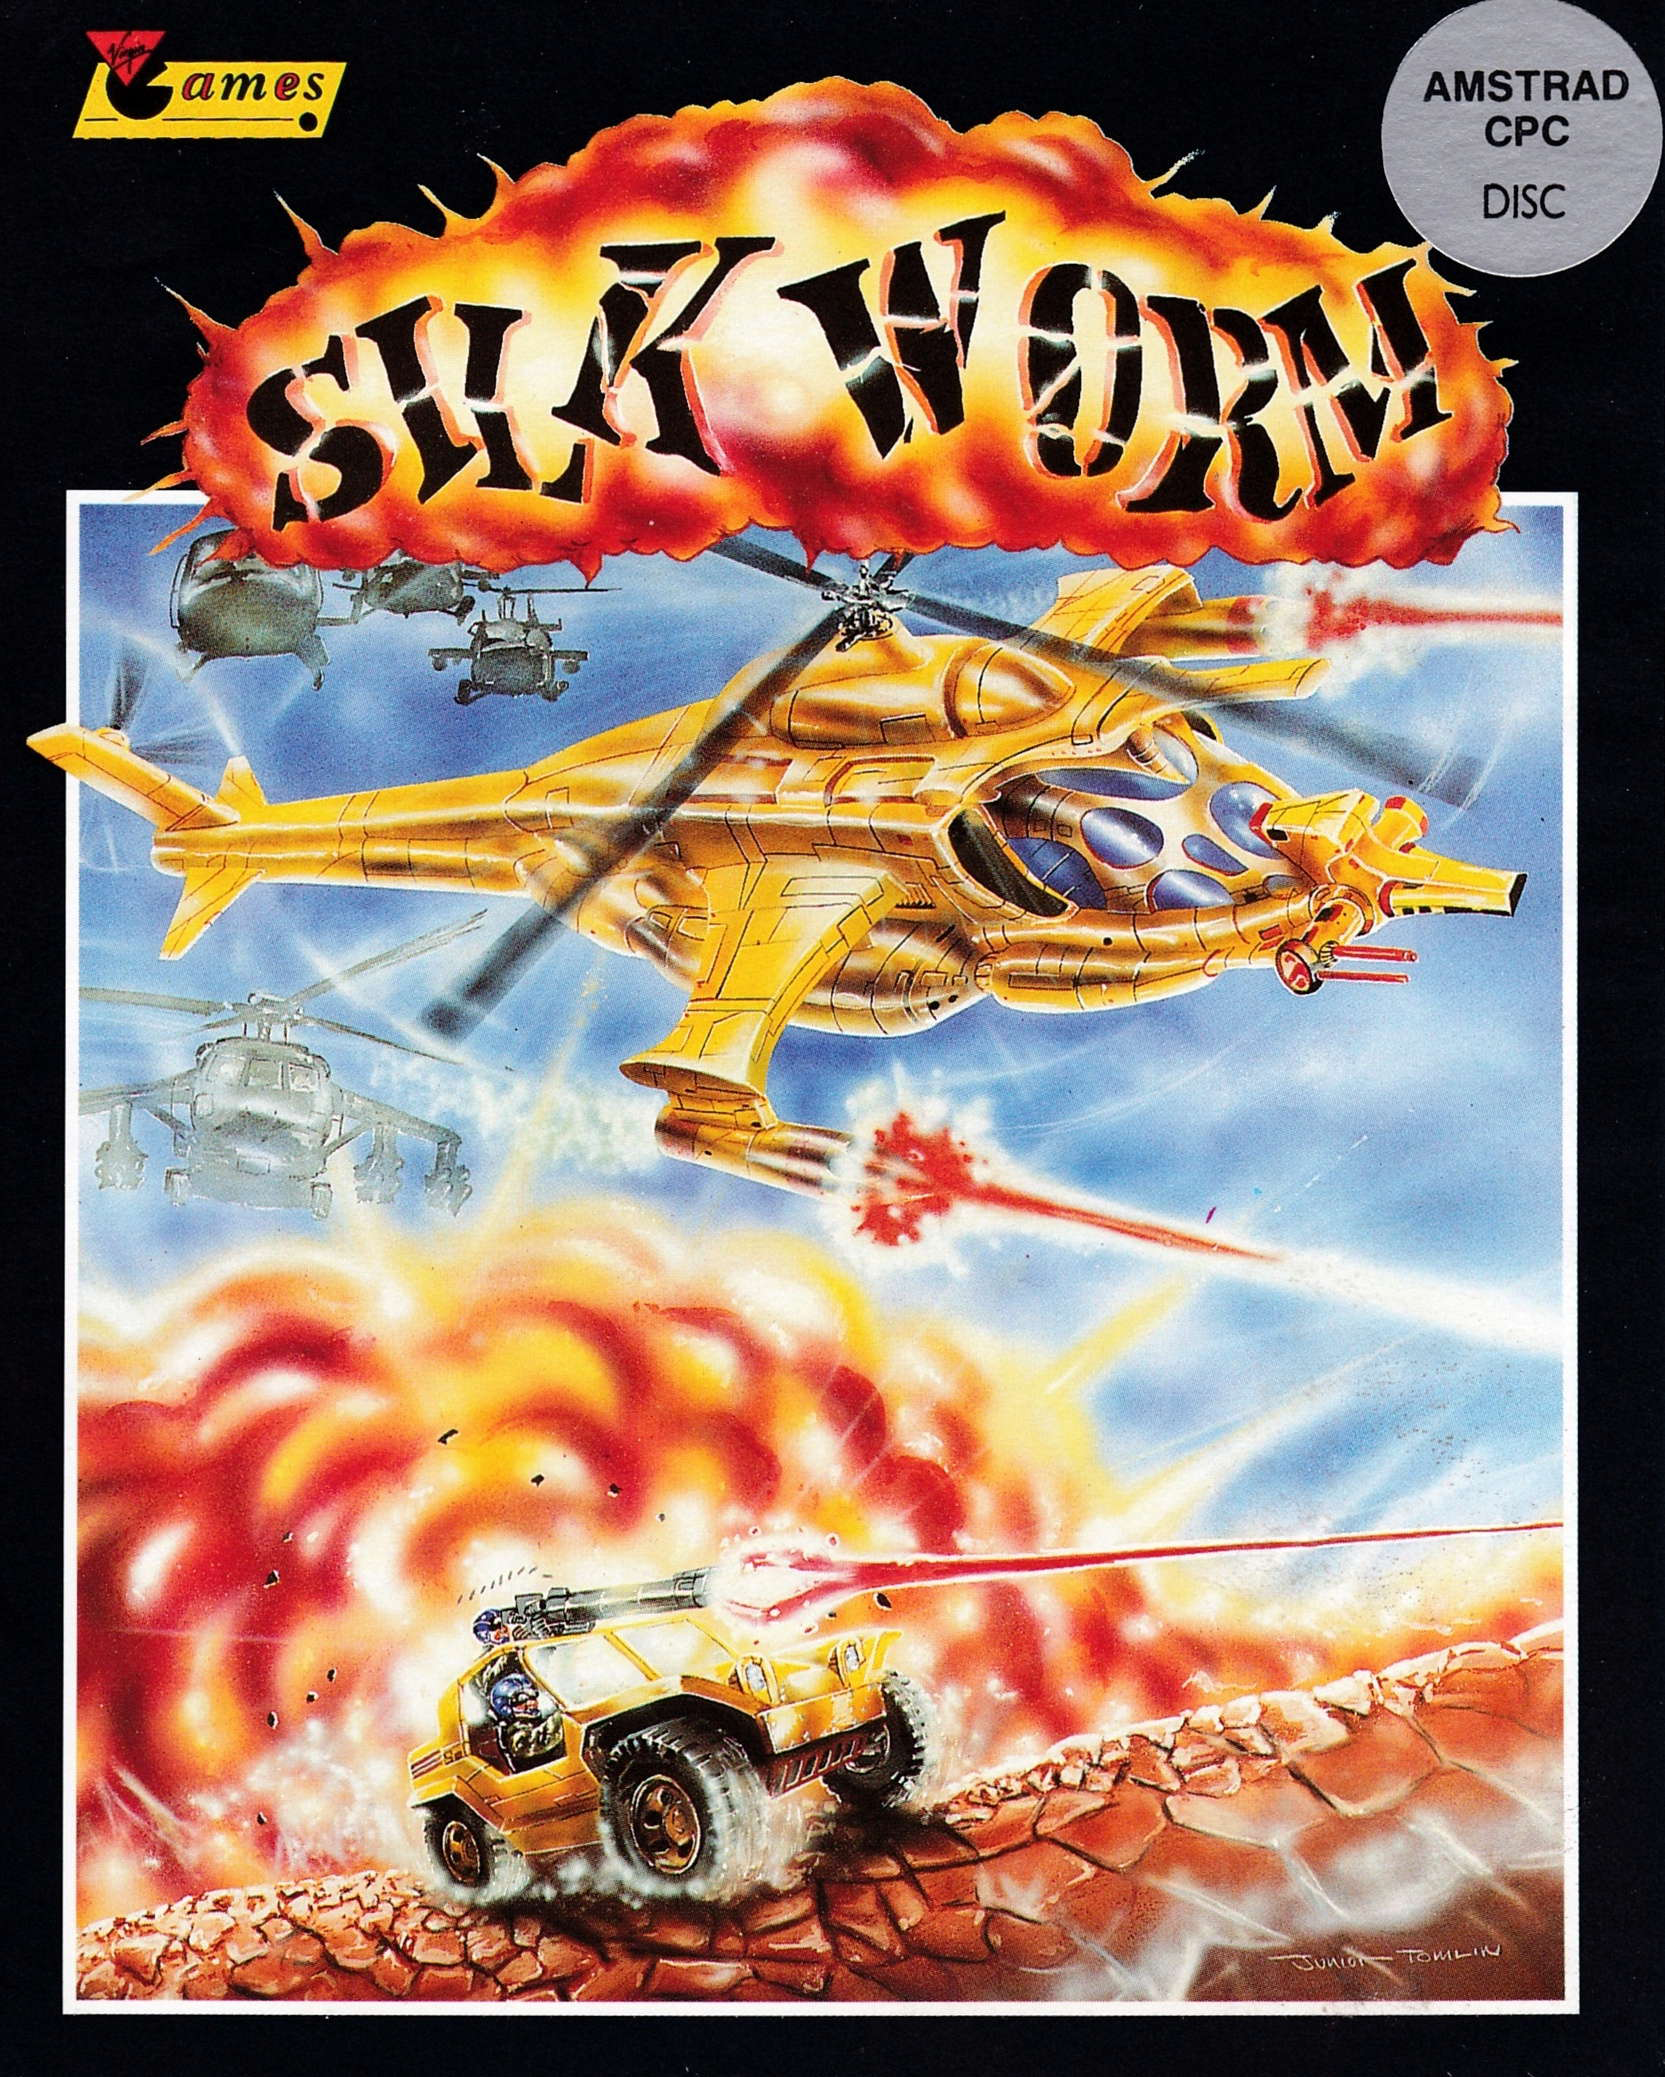 screenshot of the Amstrad CPC game Silkworm by GameBase CPC